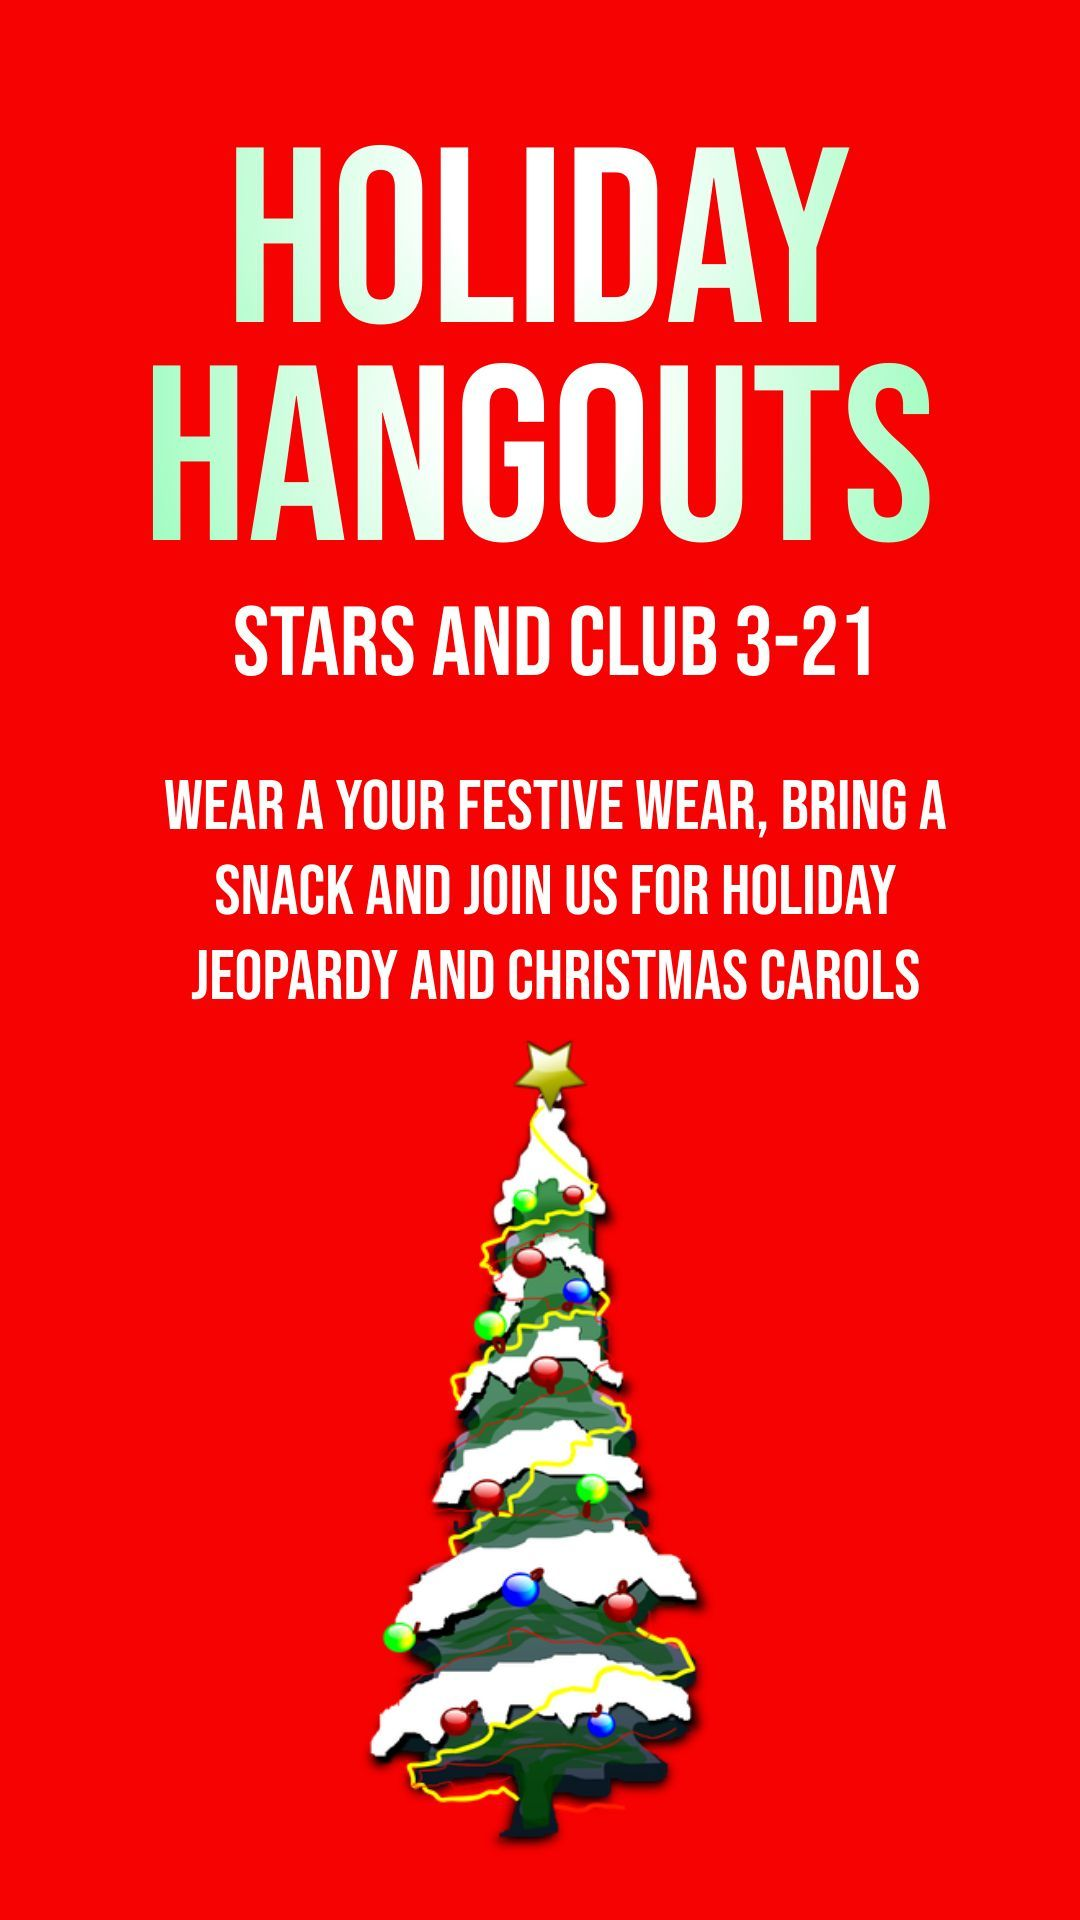 STARS and Club 3-21 Holiday Hang Out Party